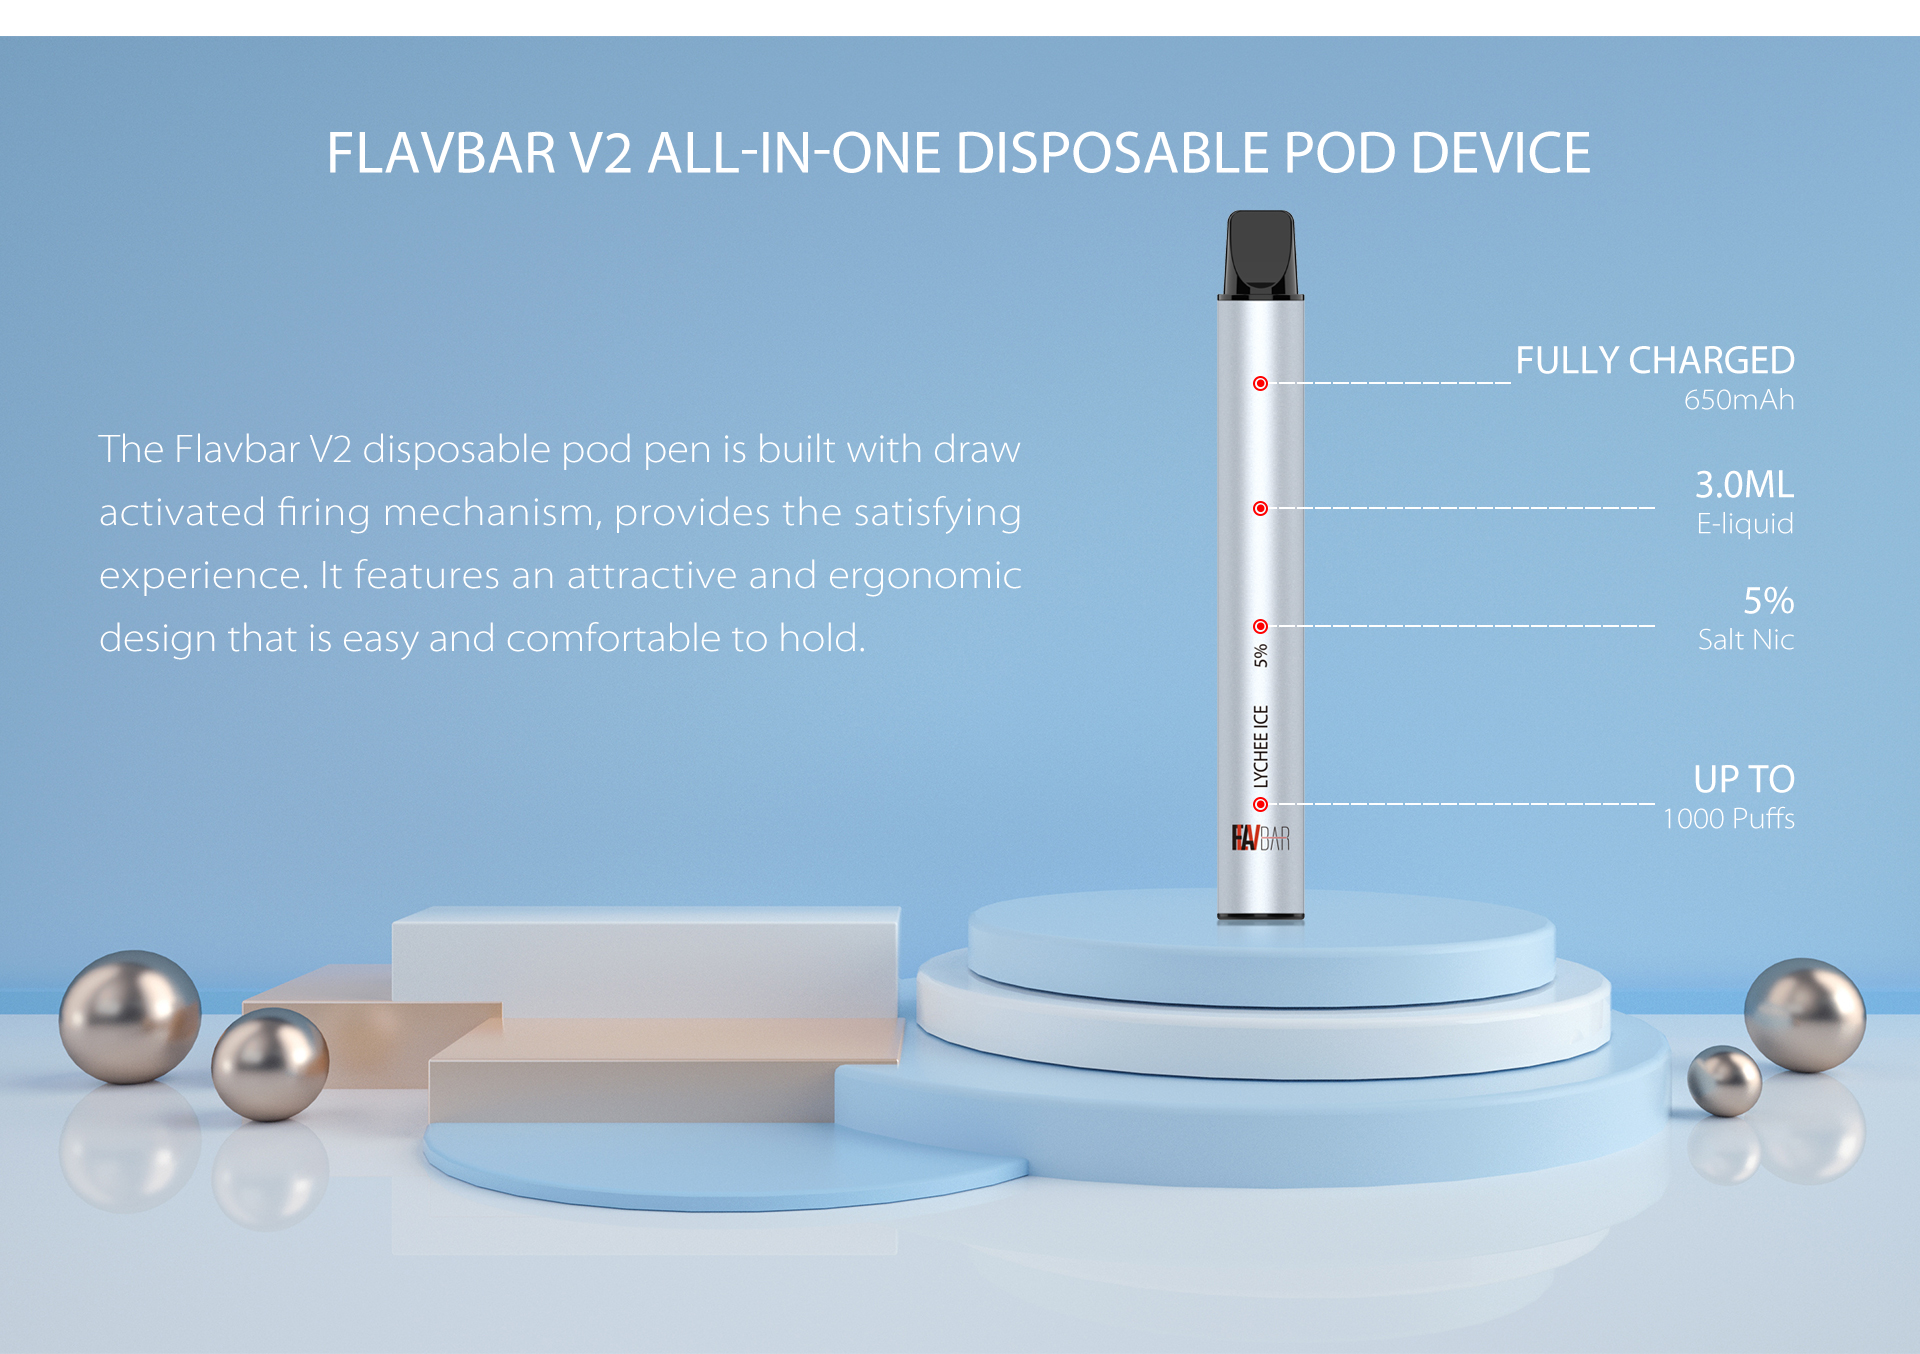 FLAVBAR v2 all-in-one disposable device.